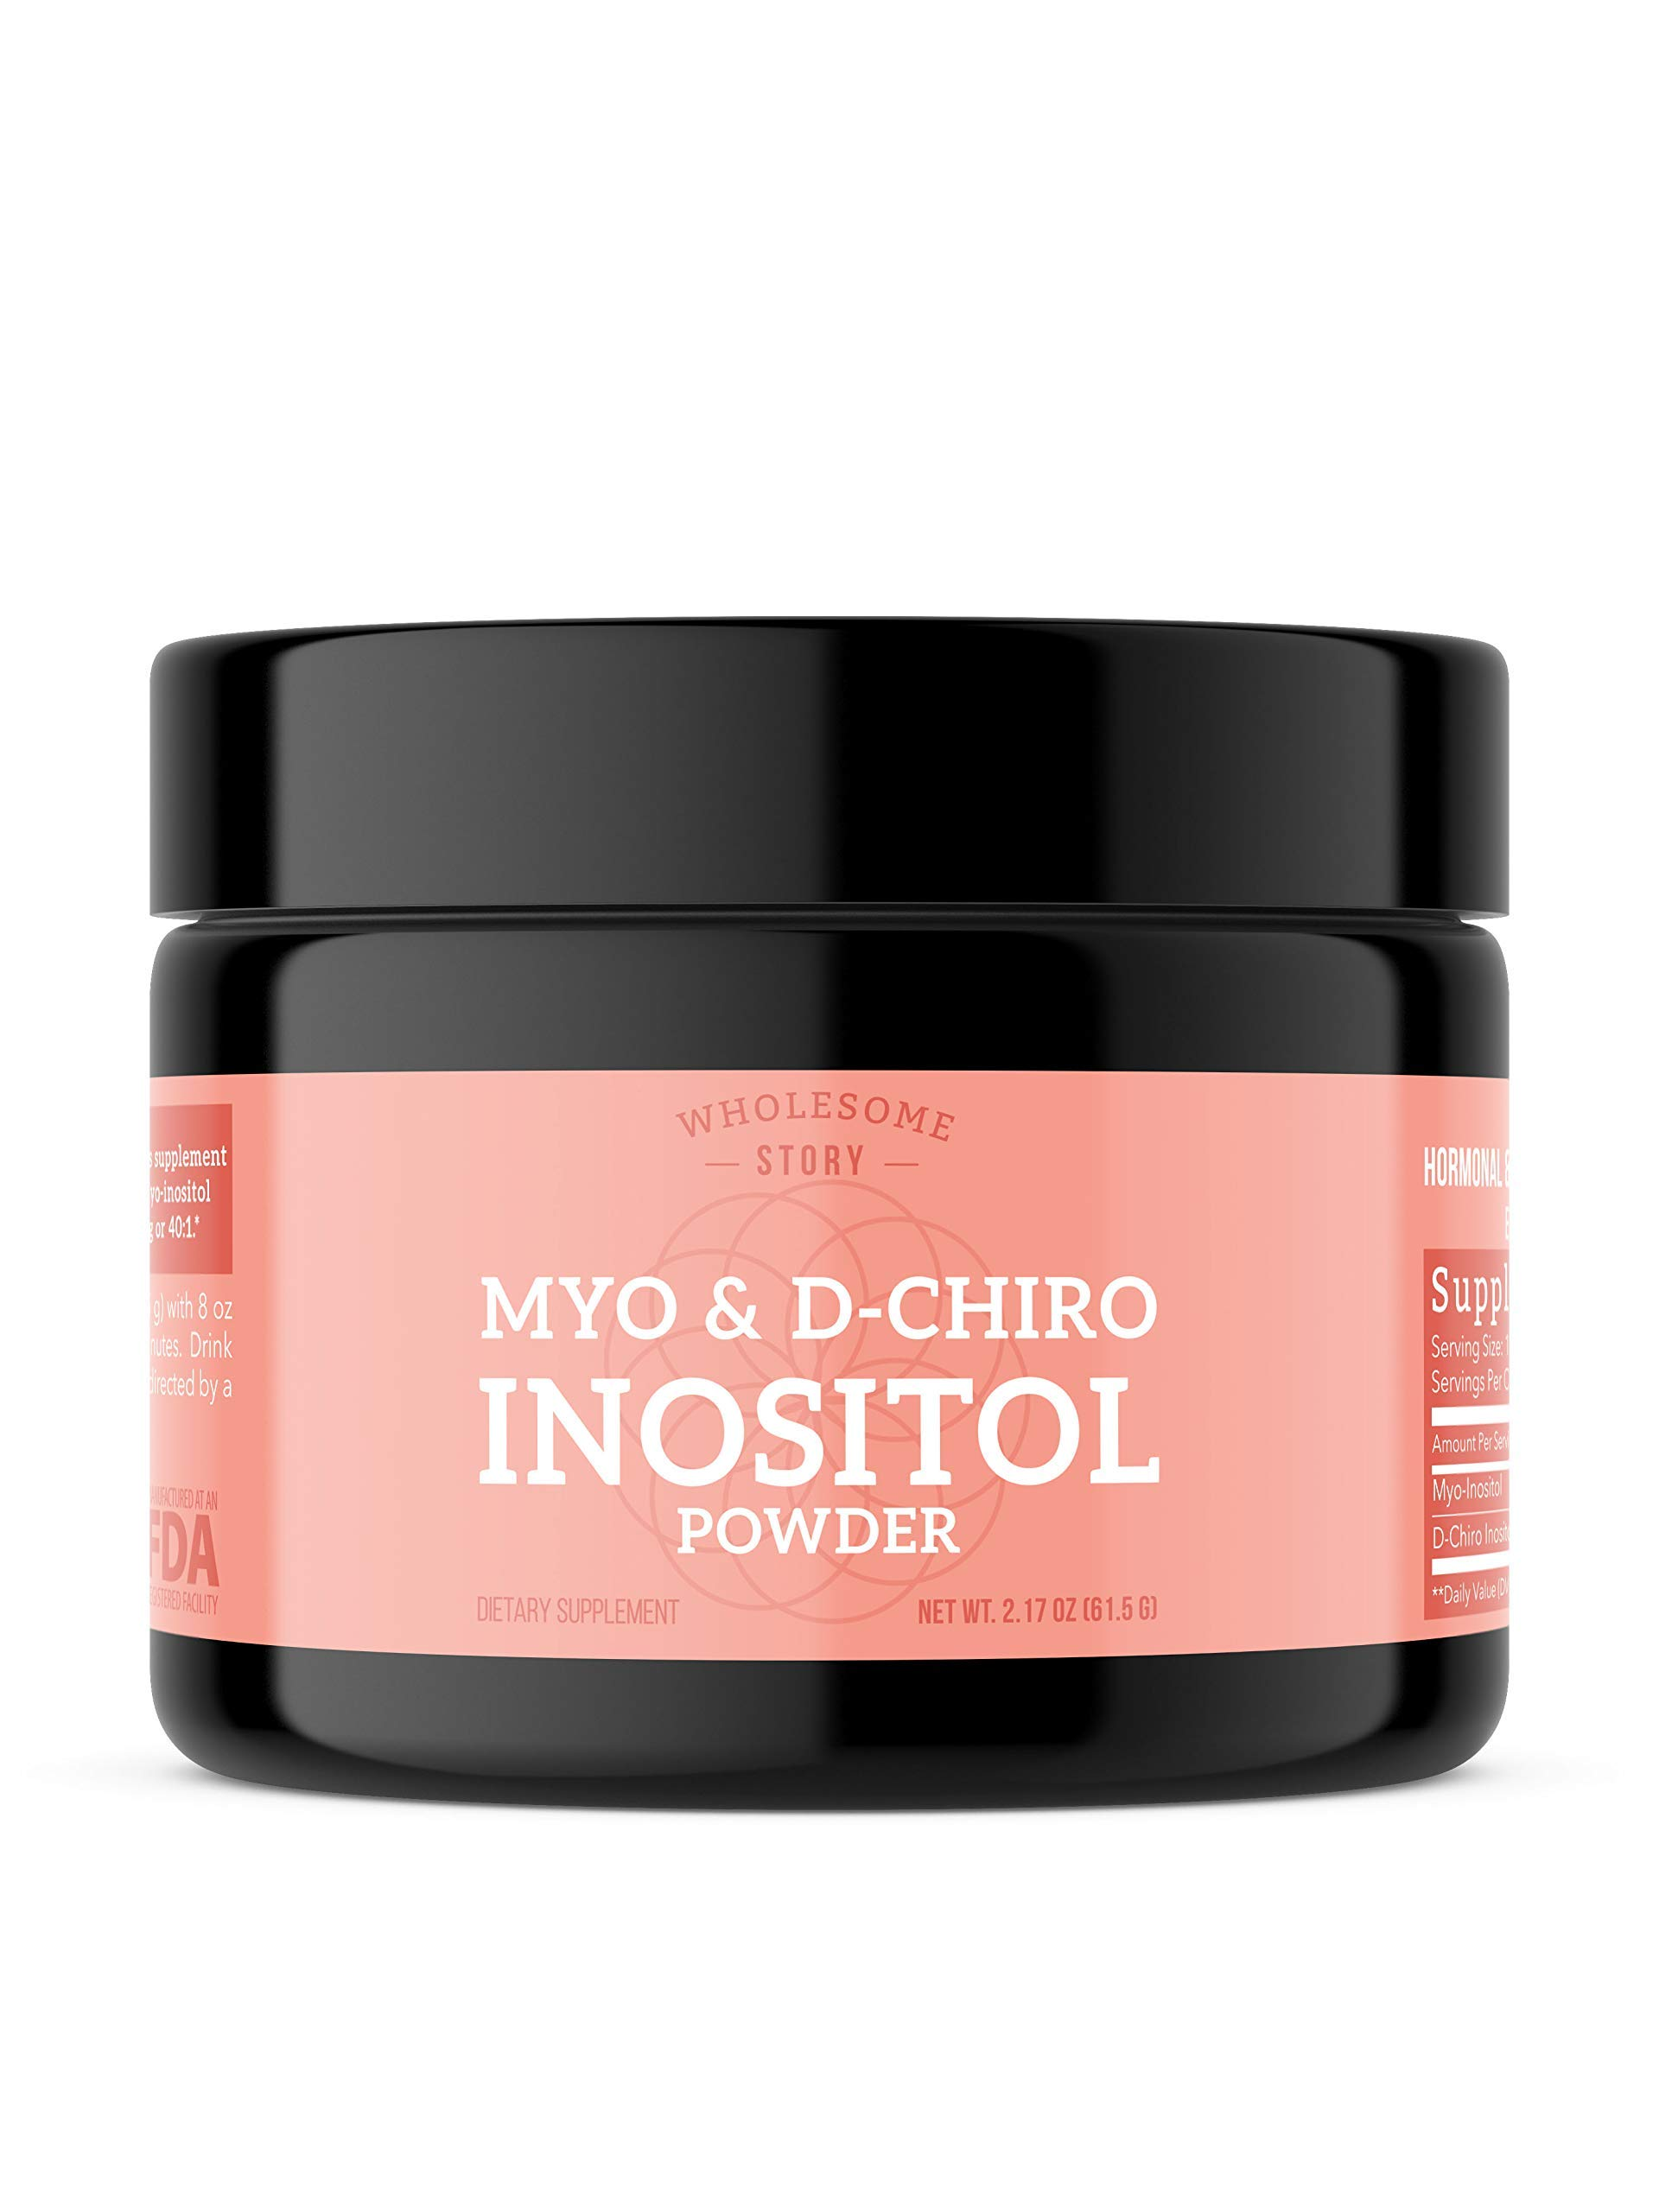 Myo-Inositol & D-Chiro Inositol Powder | 30 Day Supply | 40:1 Ratio | Hormonal Balance & Healthy Ovarian Function Support for Women | Vitamin B8 | Made in USA